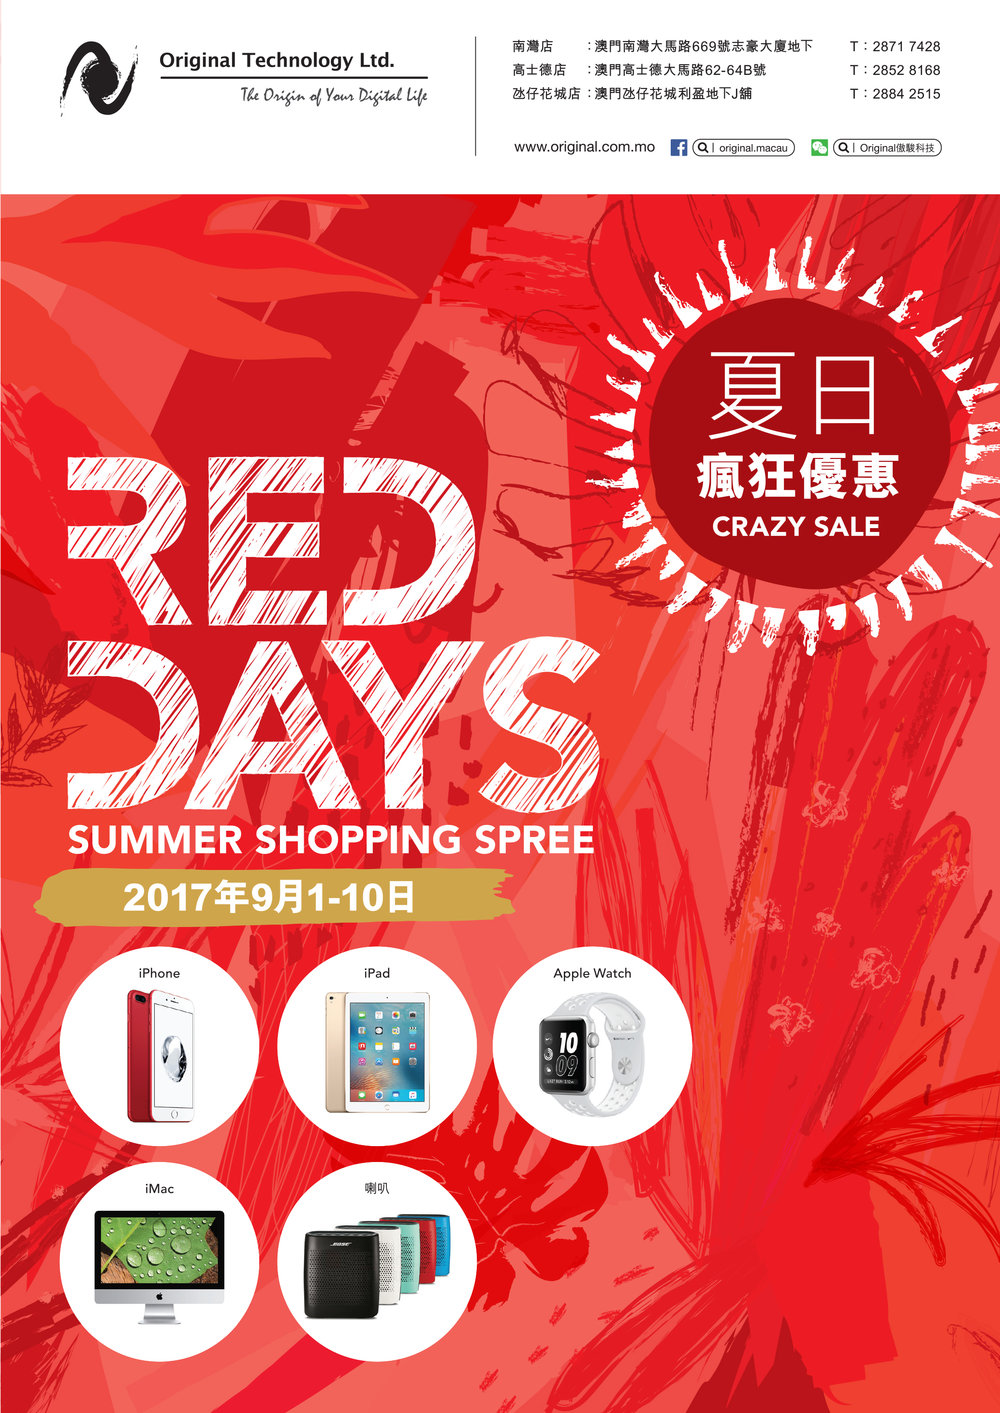 Red_Days_2017_Summer_A4-Leaflet_O_01.jpg